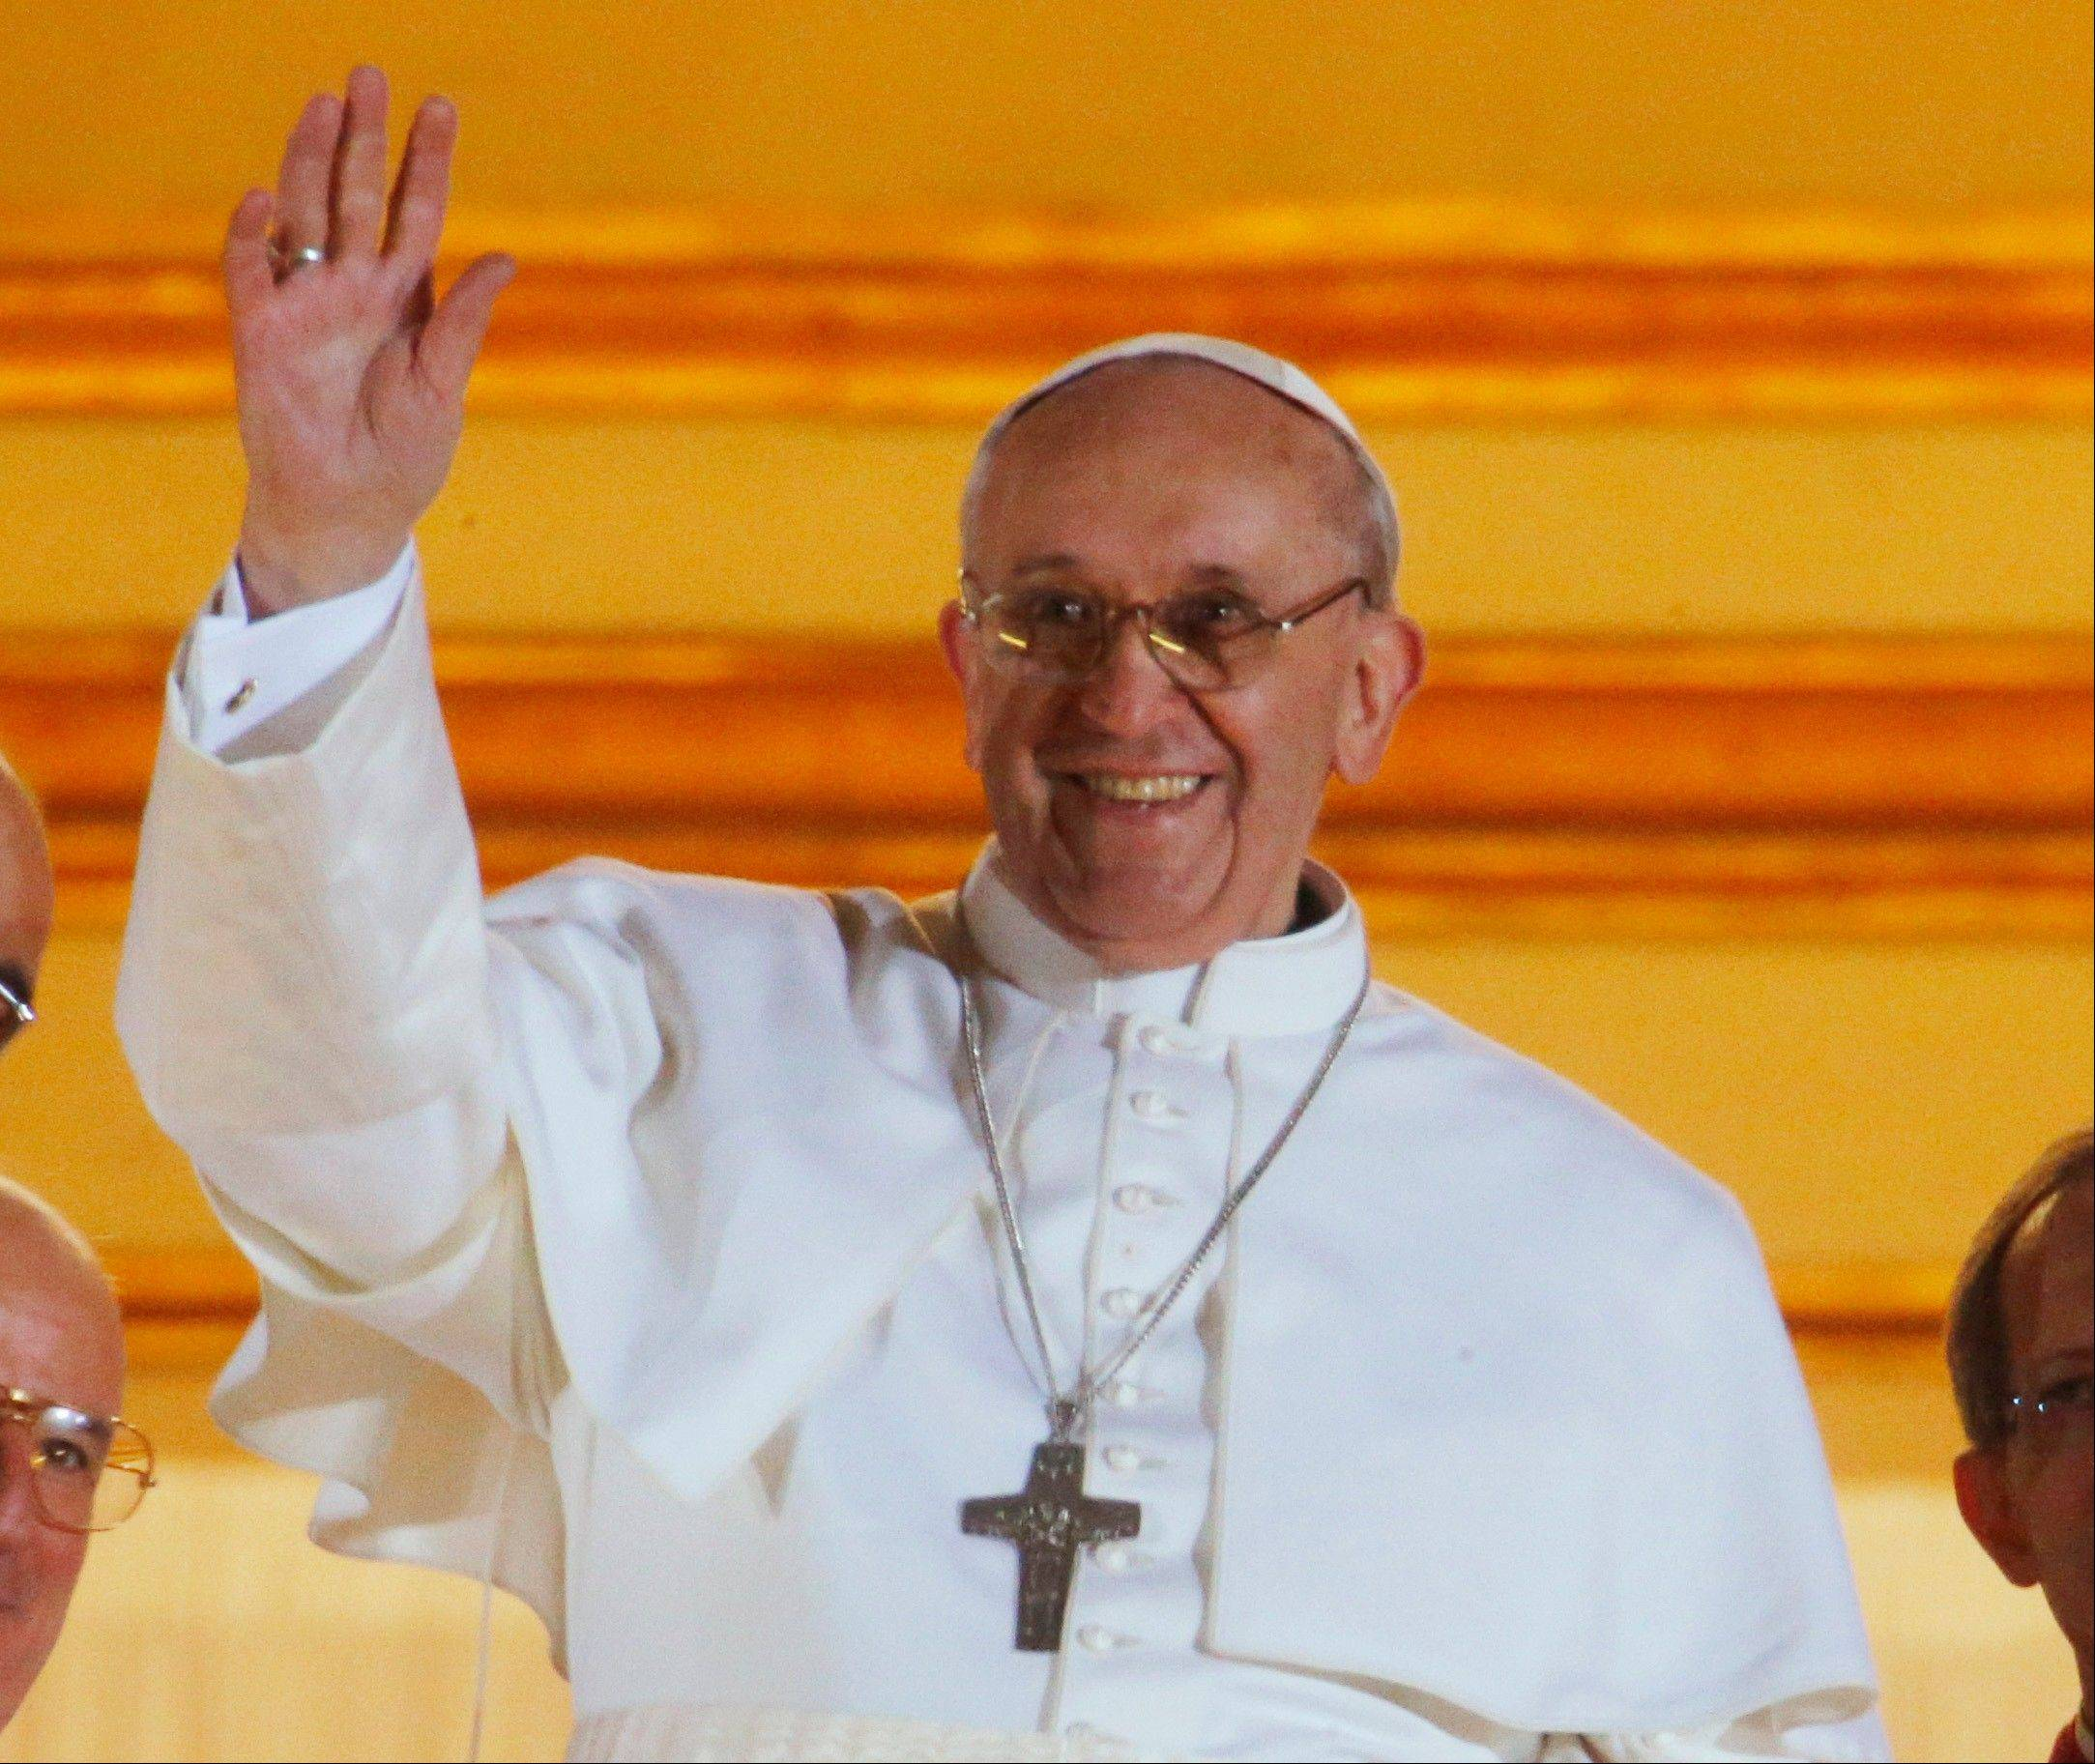 What will happen on Pope Francis' first day?